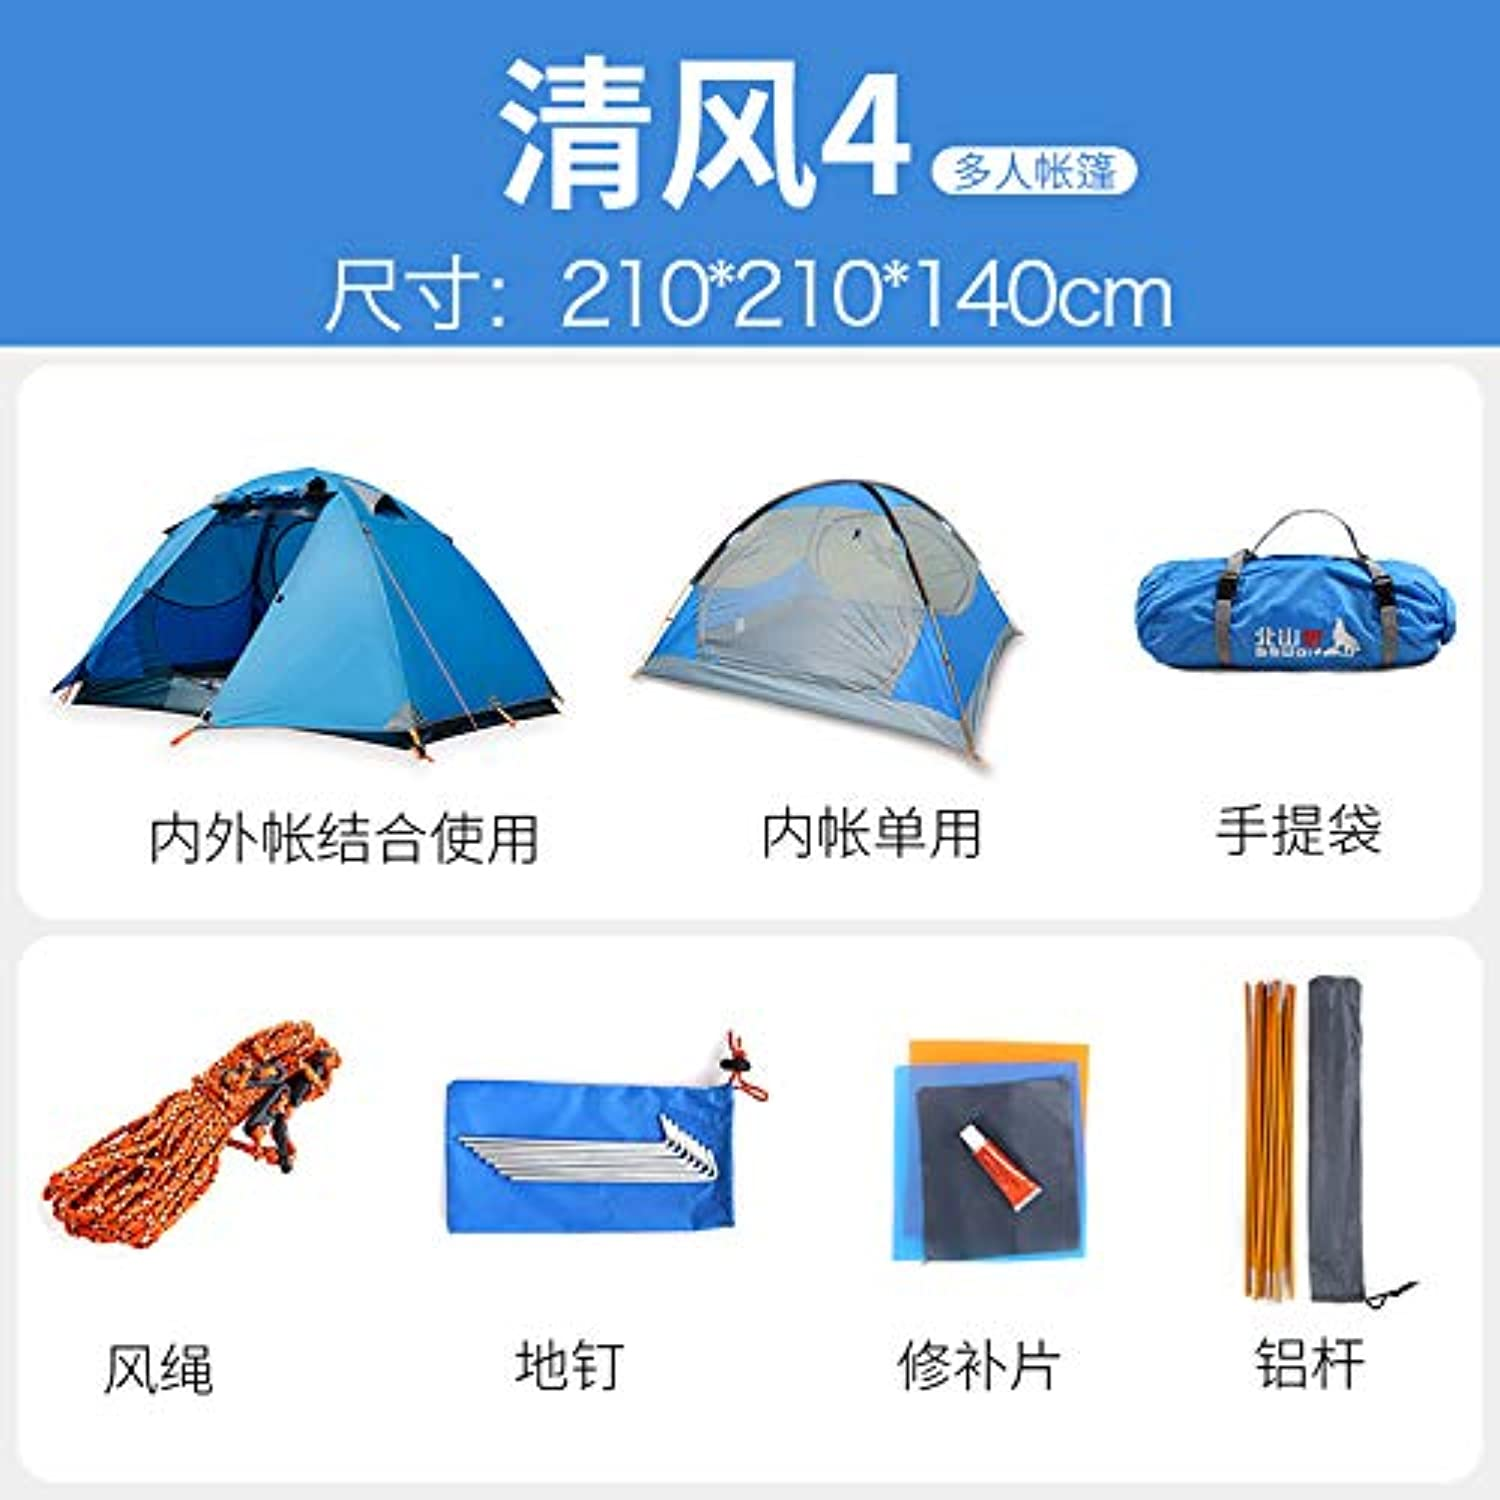 Kitayama Wolf Outdoor Tent 2 bunk Field 34 People Camping Thick Waterproof rain Camping Equipment Home